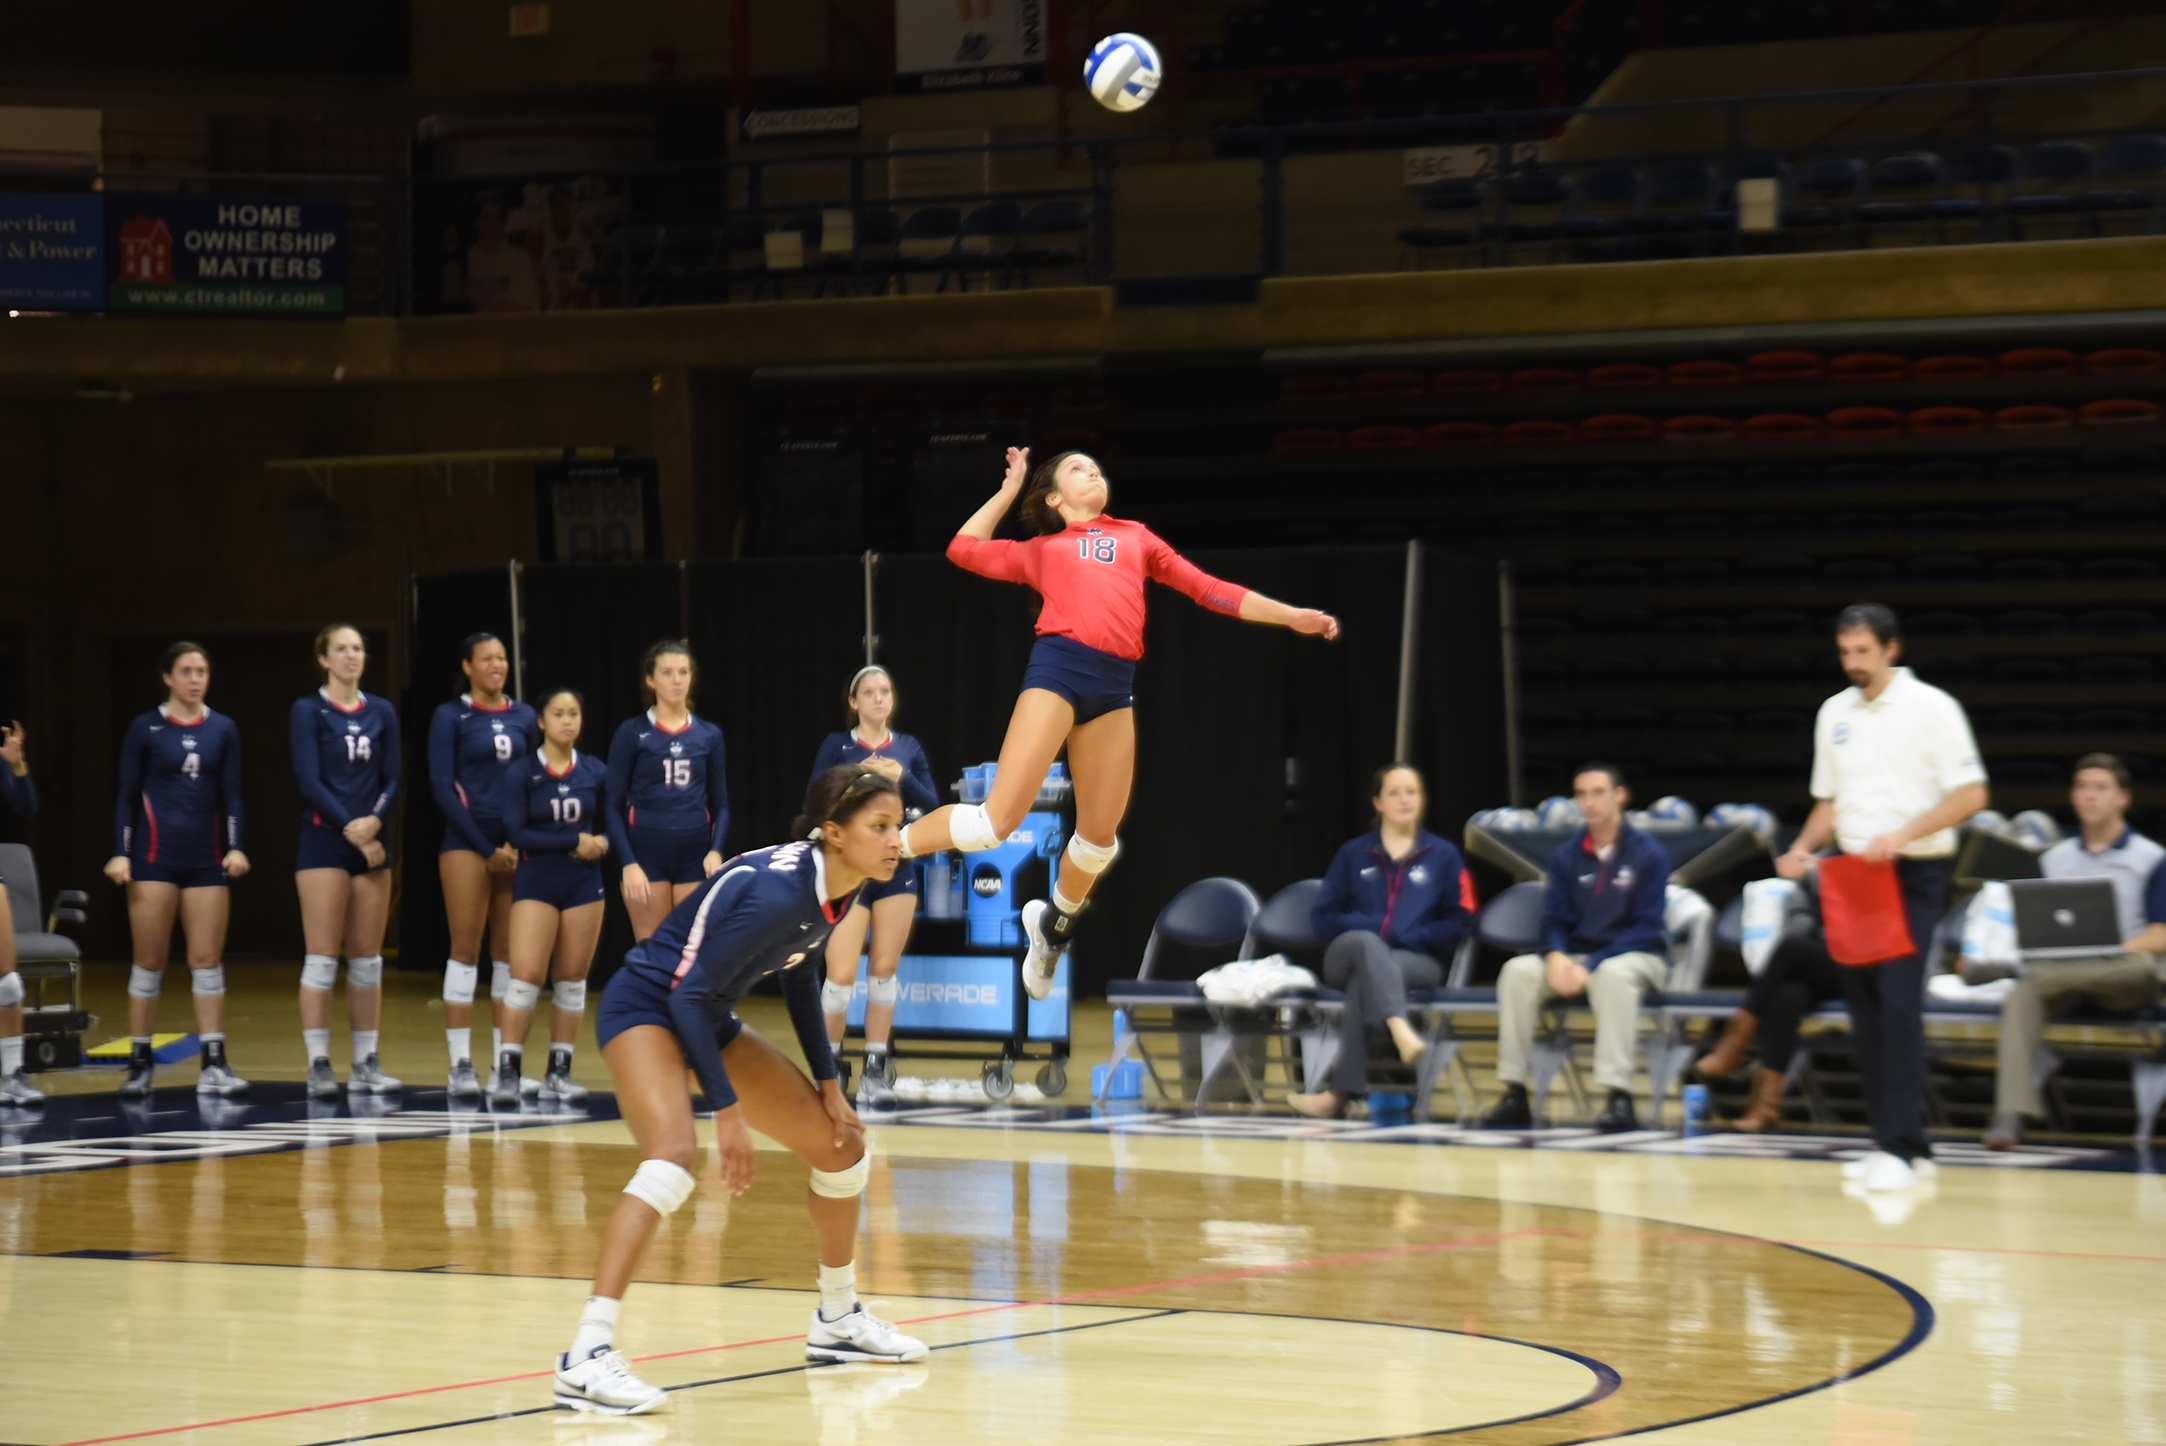 UConn defensive specialist Kennedy Arundel goes up for a serve during the a game at Gampel Pavilion in Storrs, Connecticut.The team will square off against Temple (20-8, 11-5 American) on Wednesday in what is a battle for second place in the conference. (Allen Lang/The Daily Campus)